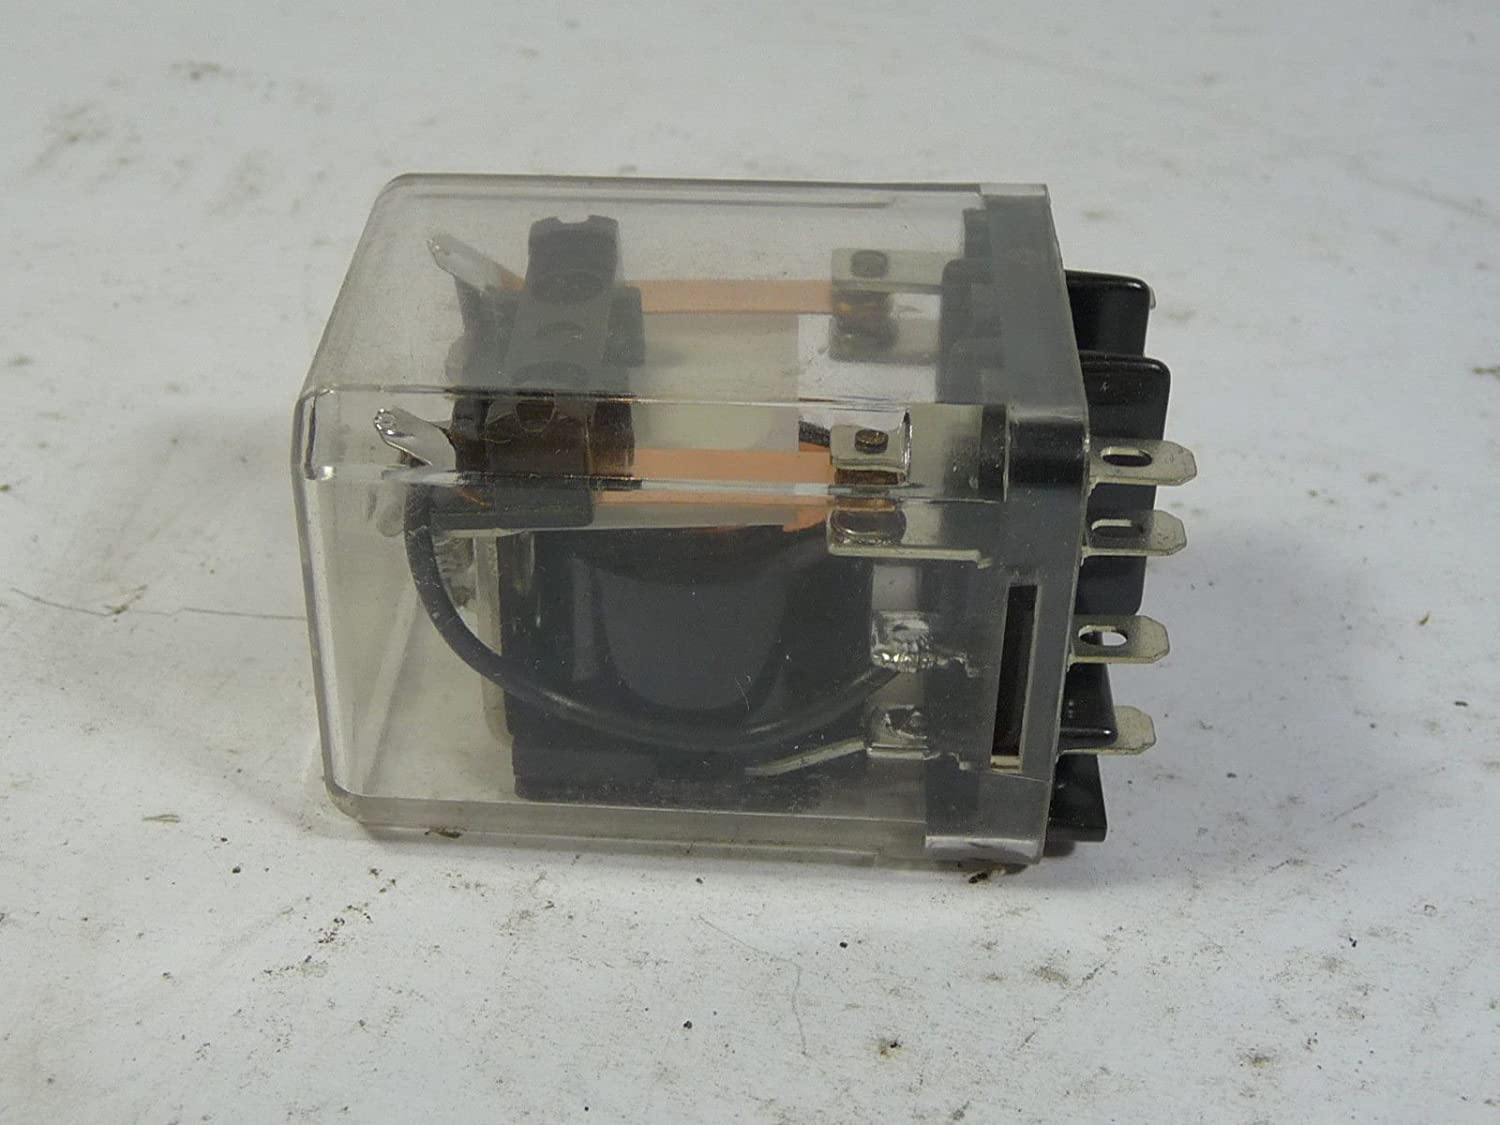 TE CONNECTIVITY/POTTER & BRUMFIELD KUP-11A15-120 Power Relay, DPDT, 120VAC, 10A, Plug in